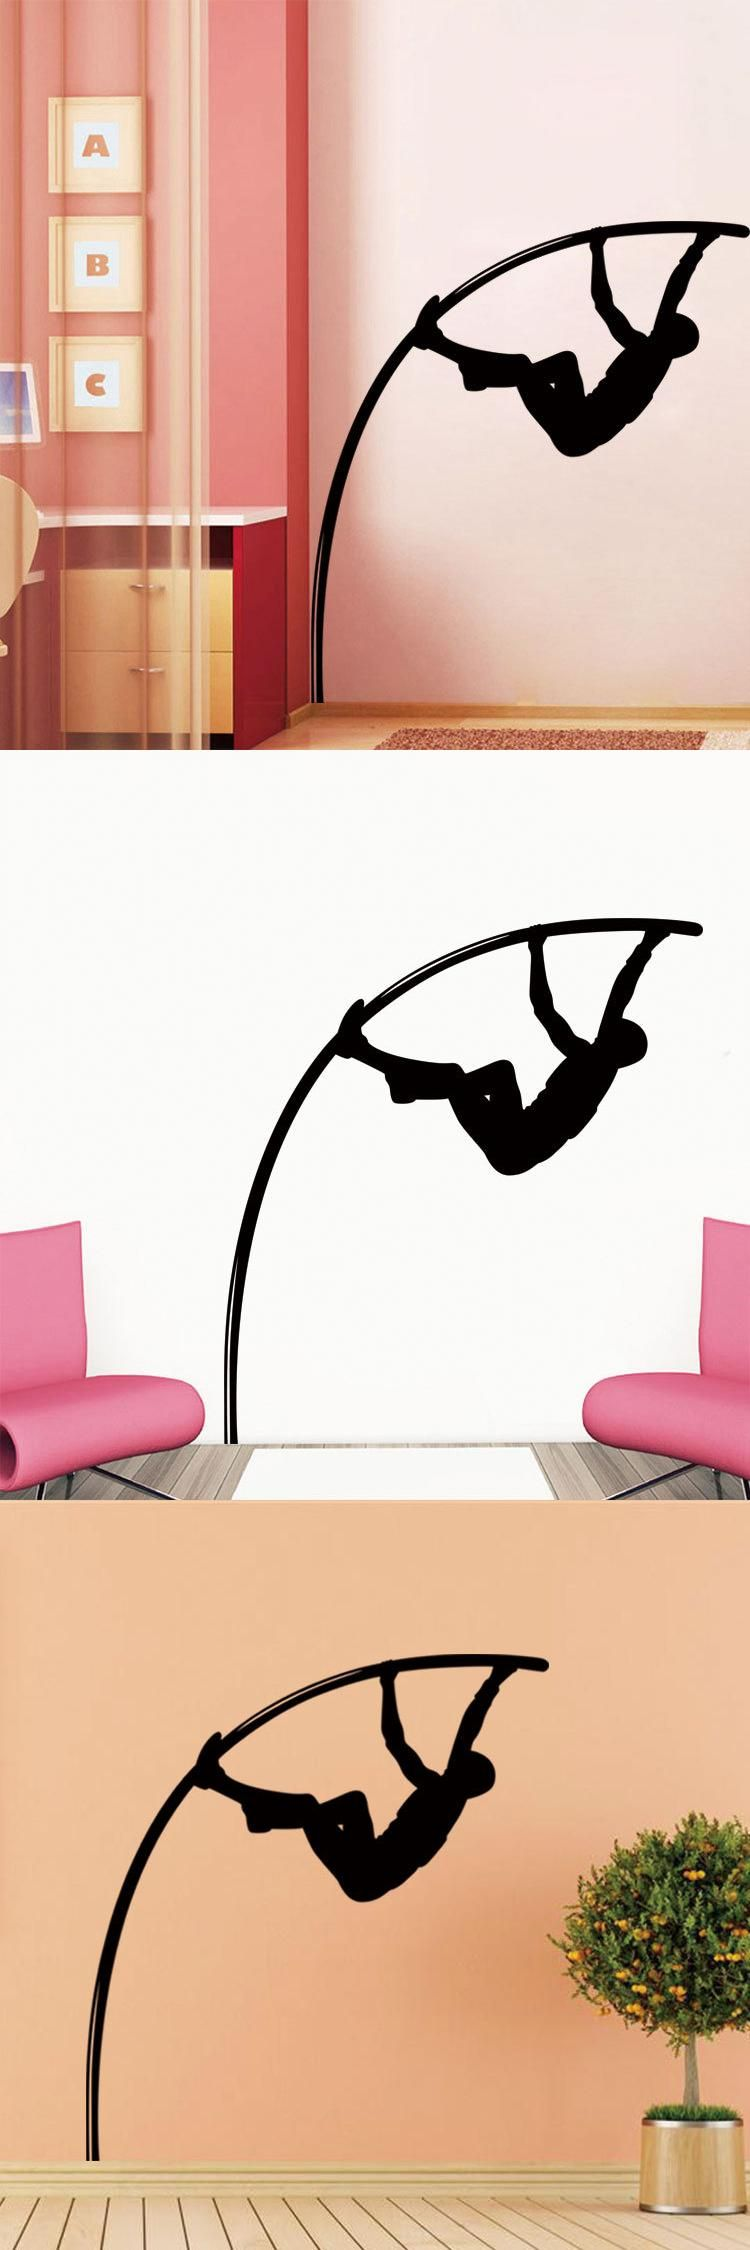 Hot Athlete Pole Vault Remove Waterproof Wall Stickers Living Room ...